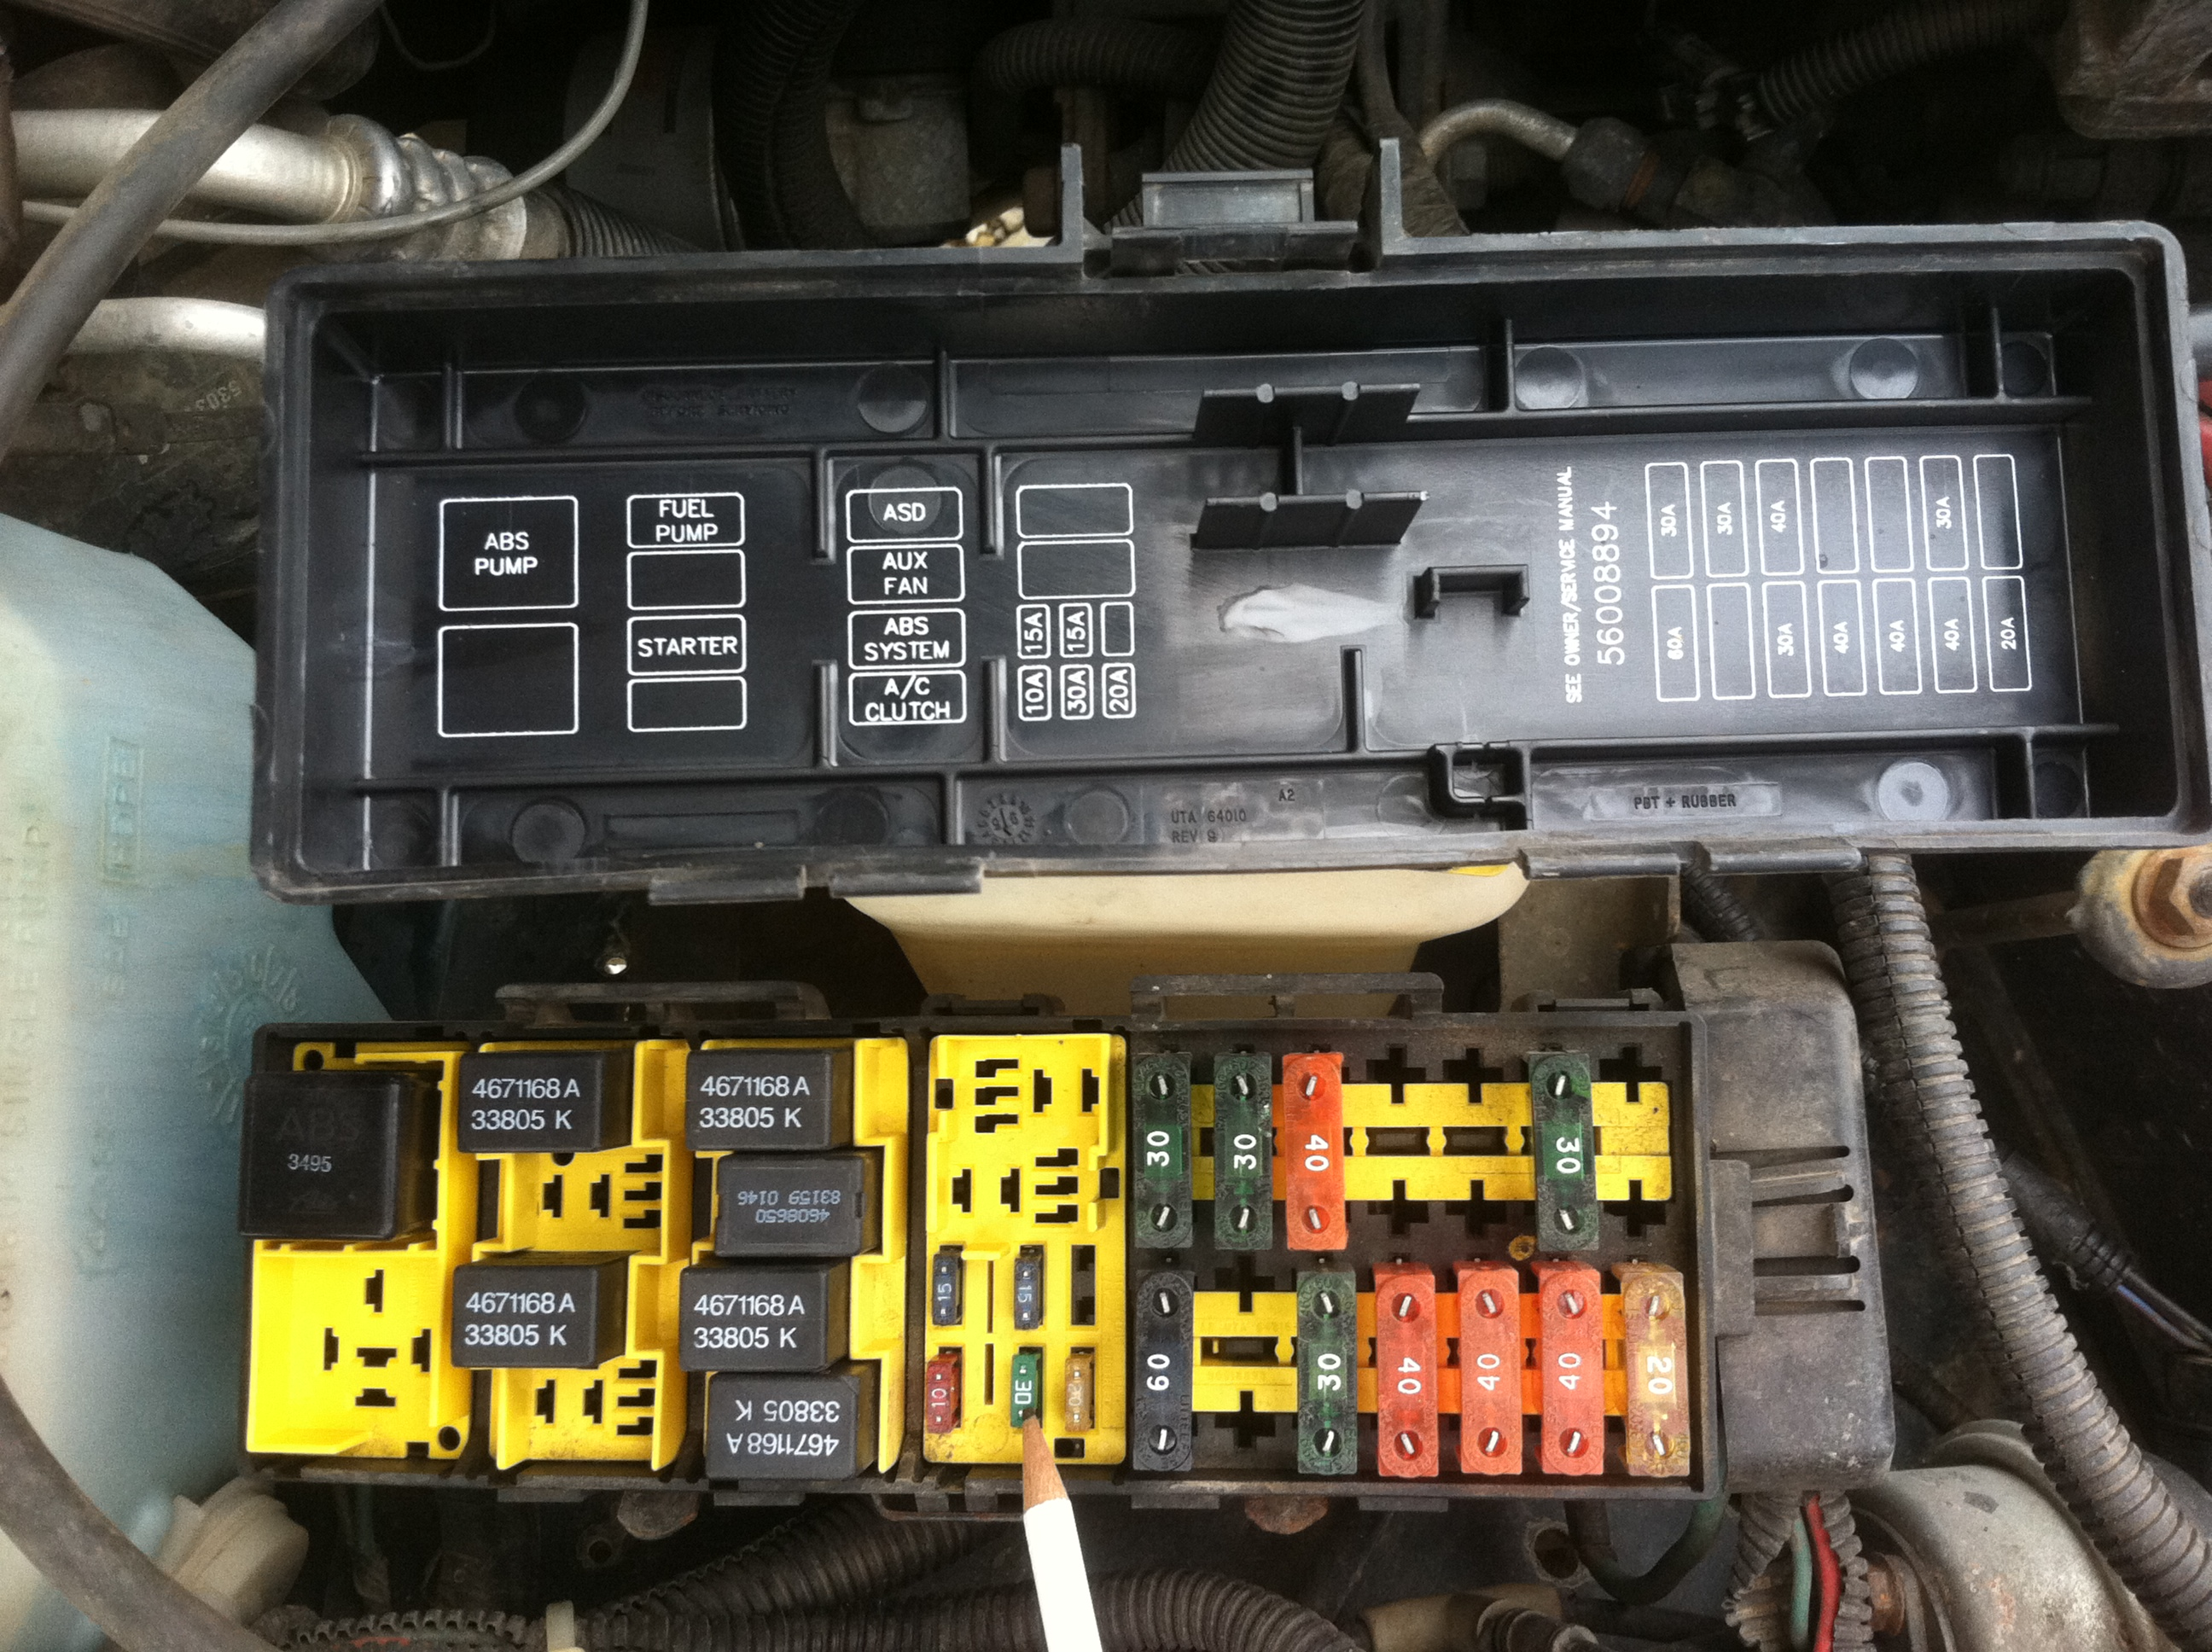 2012 03 26_165239_picture jeep cherokee i have a 1996 jeep cherokee sport (xj), 4 door, 1998 jeep grand cherokee under hood fuse box diagram at creativeand.co